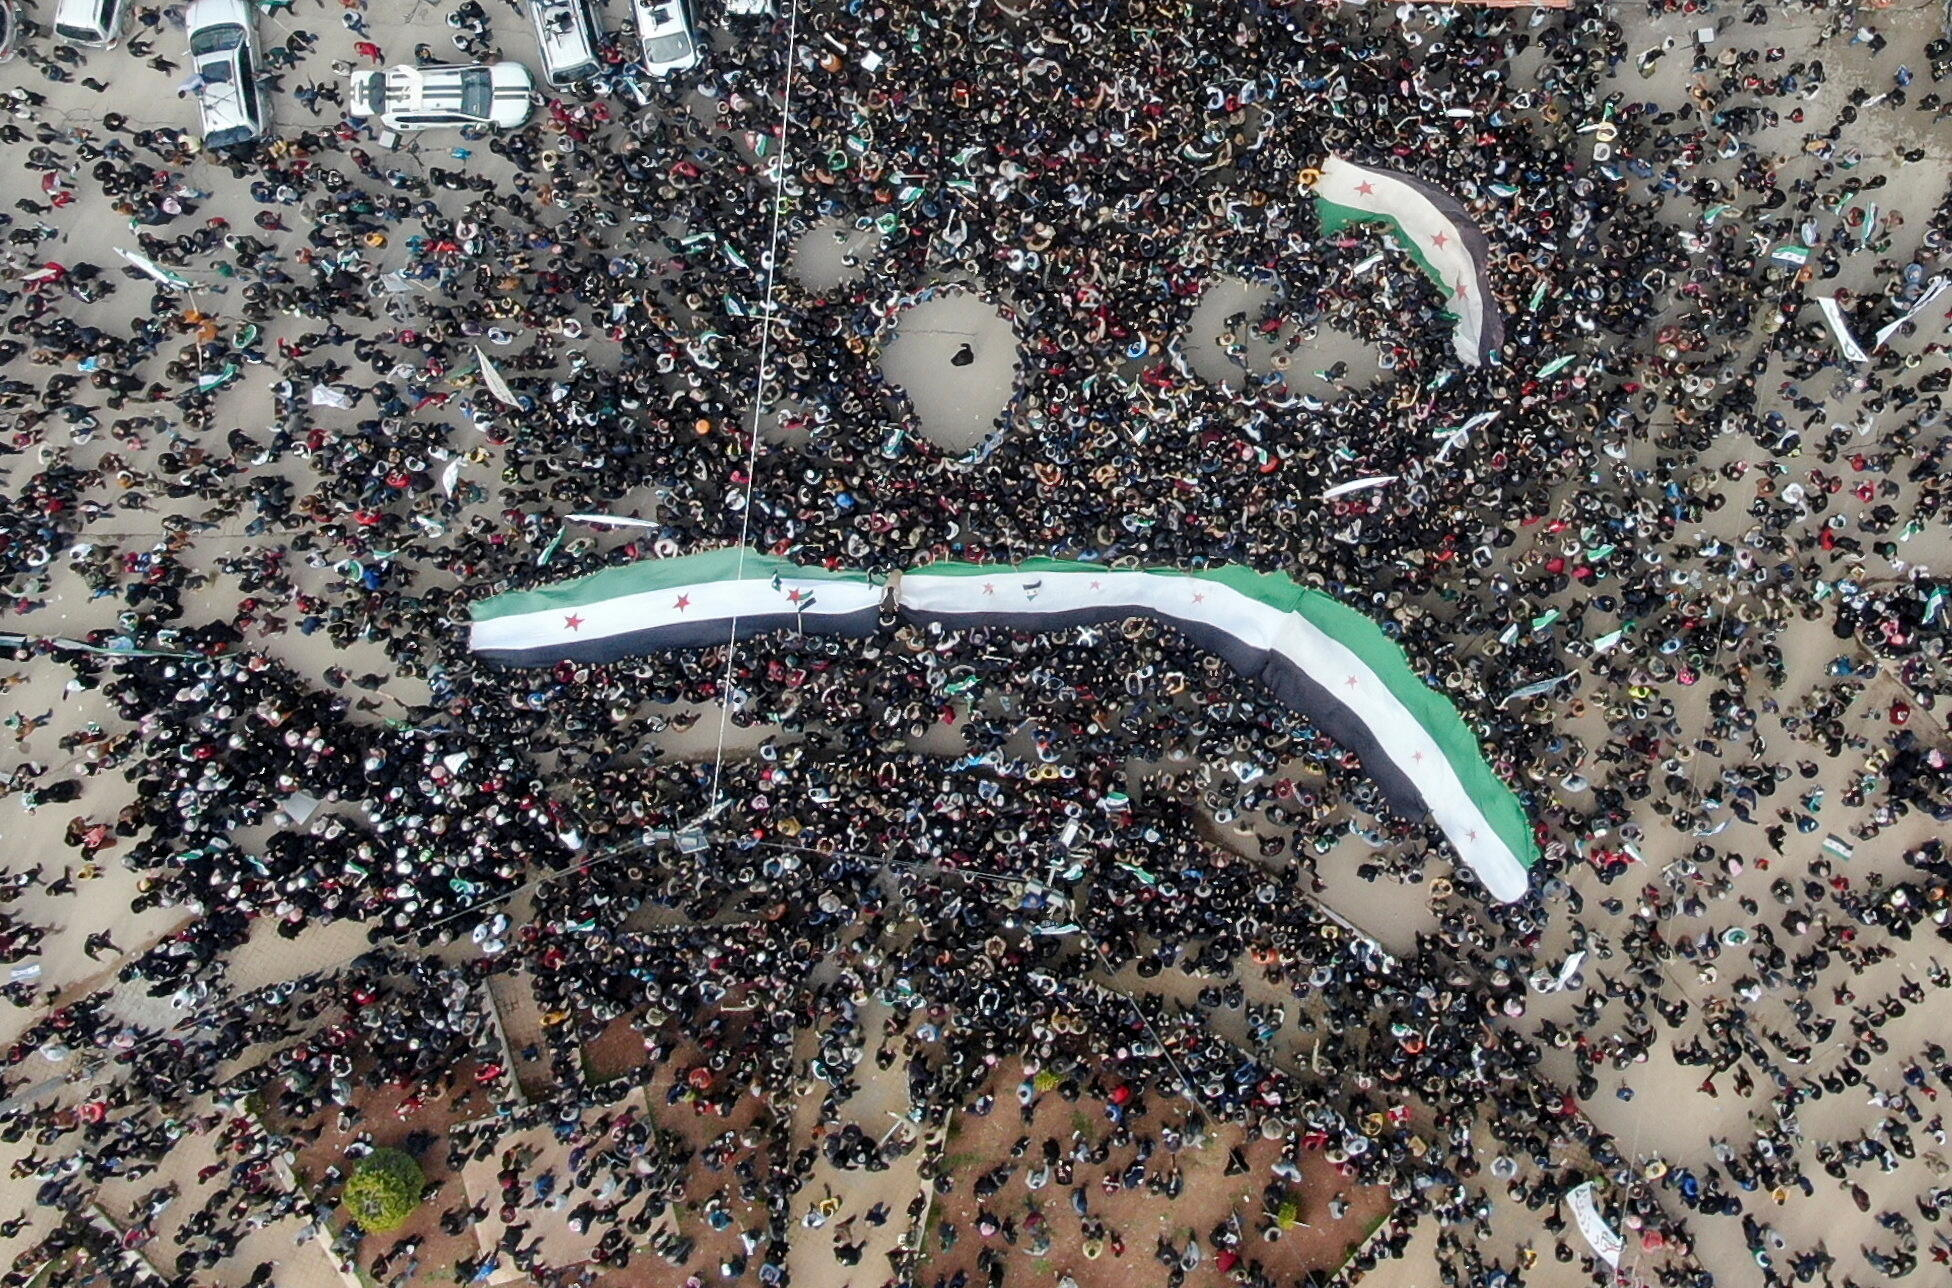 2021-03-15T133309Z_870227552_RC2PBM9YV3HC_RTRMADP_3_SYRIA-SECURITY-ANNIVERSARY-PROTESTS